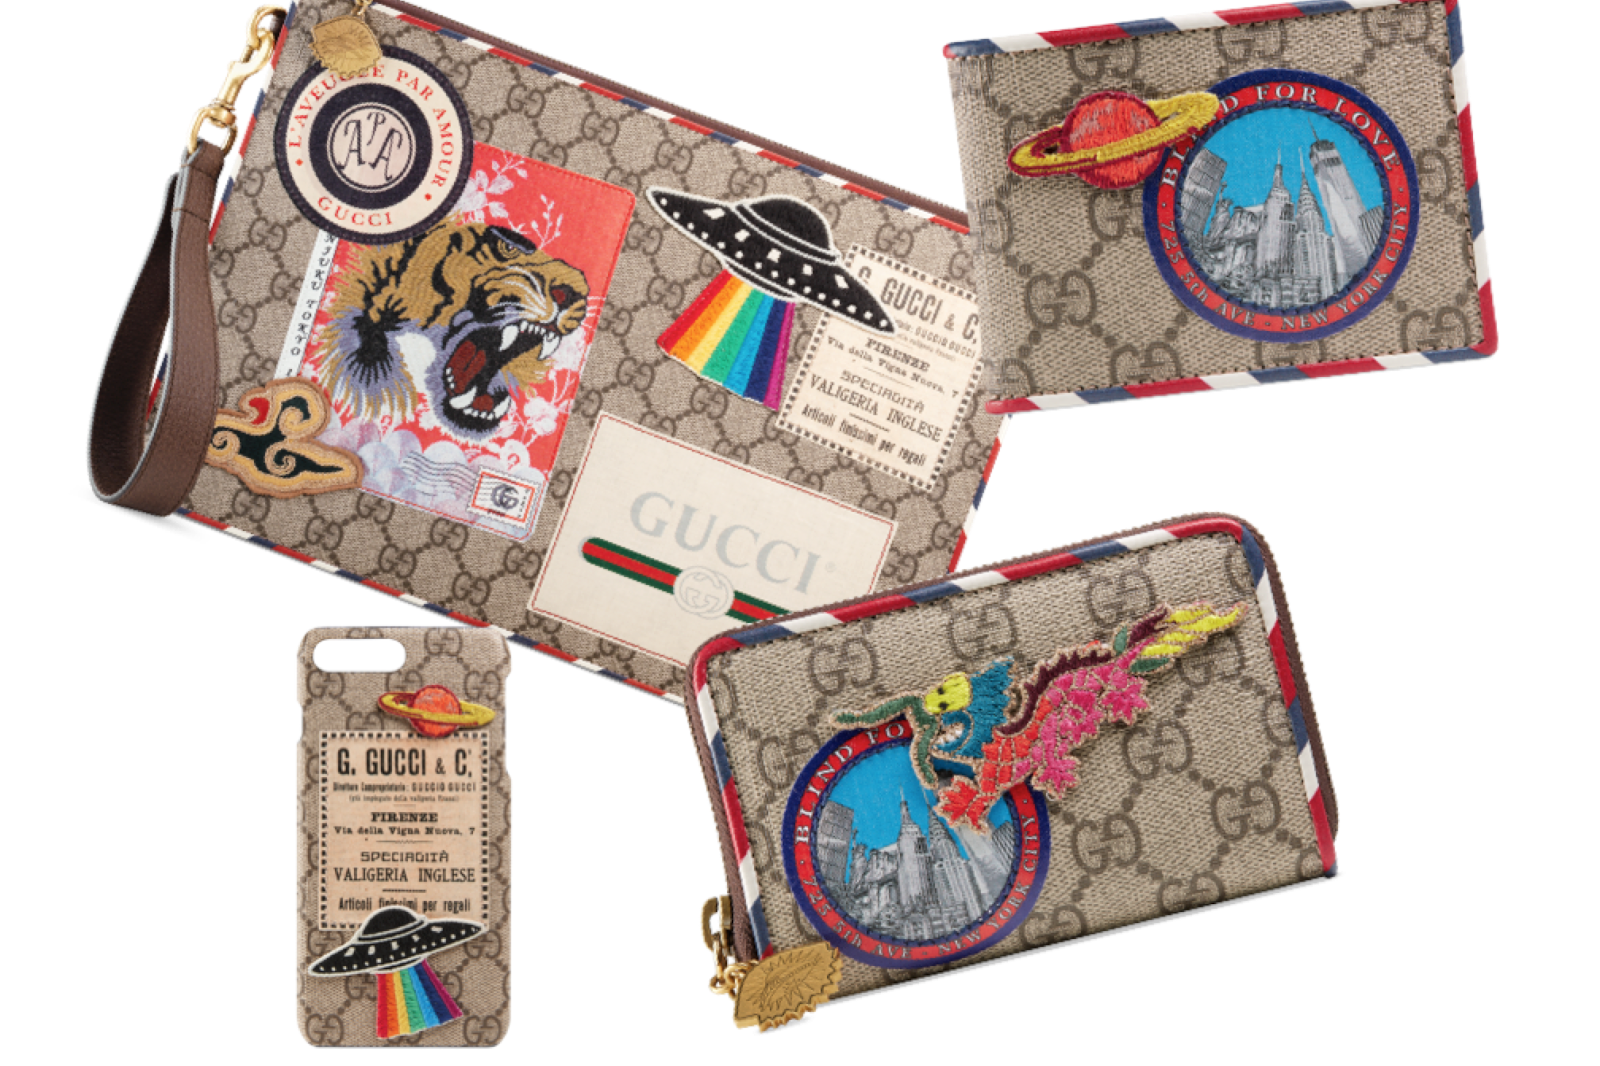 Gucci's Courrier Collection